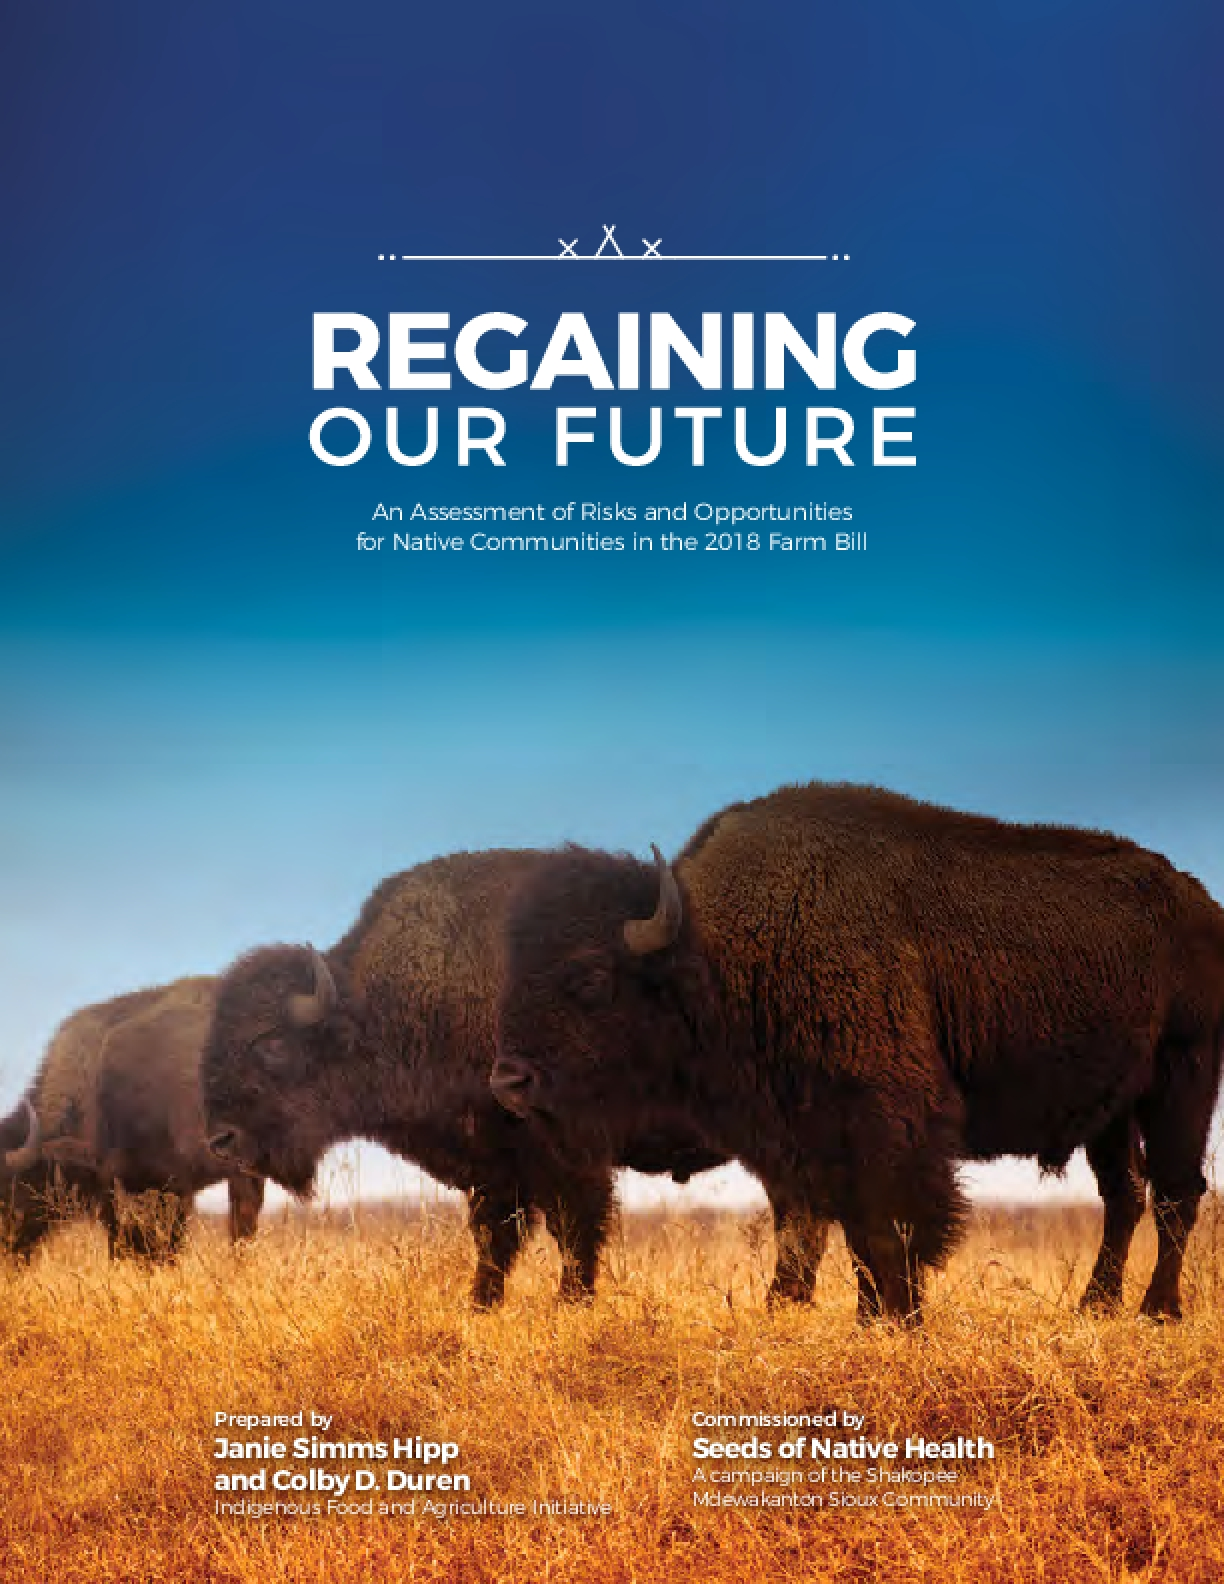 Regaining our Future: An Assessment of Risks and Opportunities for Native Communities in the 2018 Farm Bill